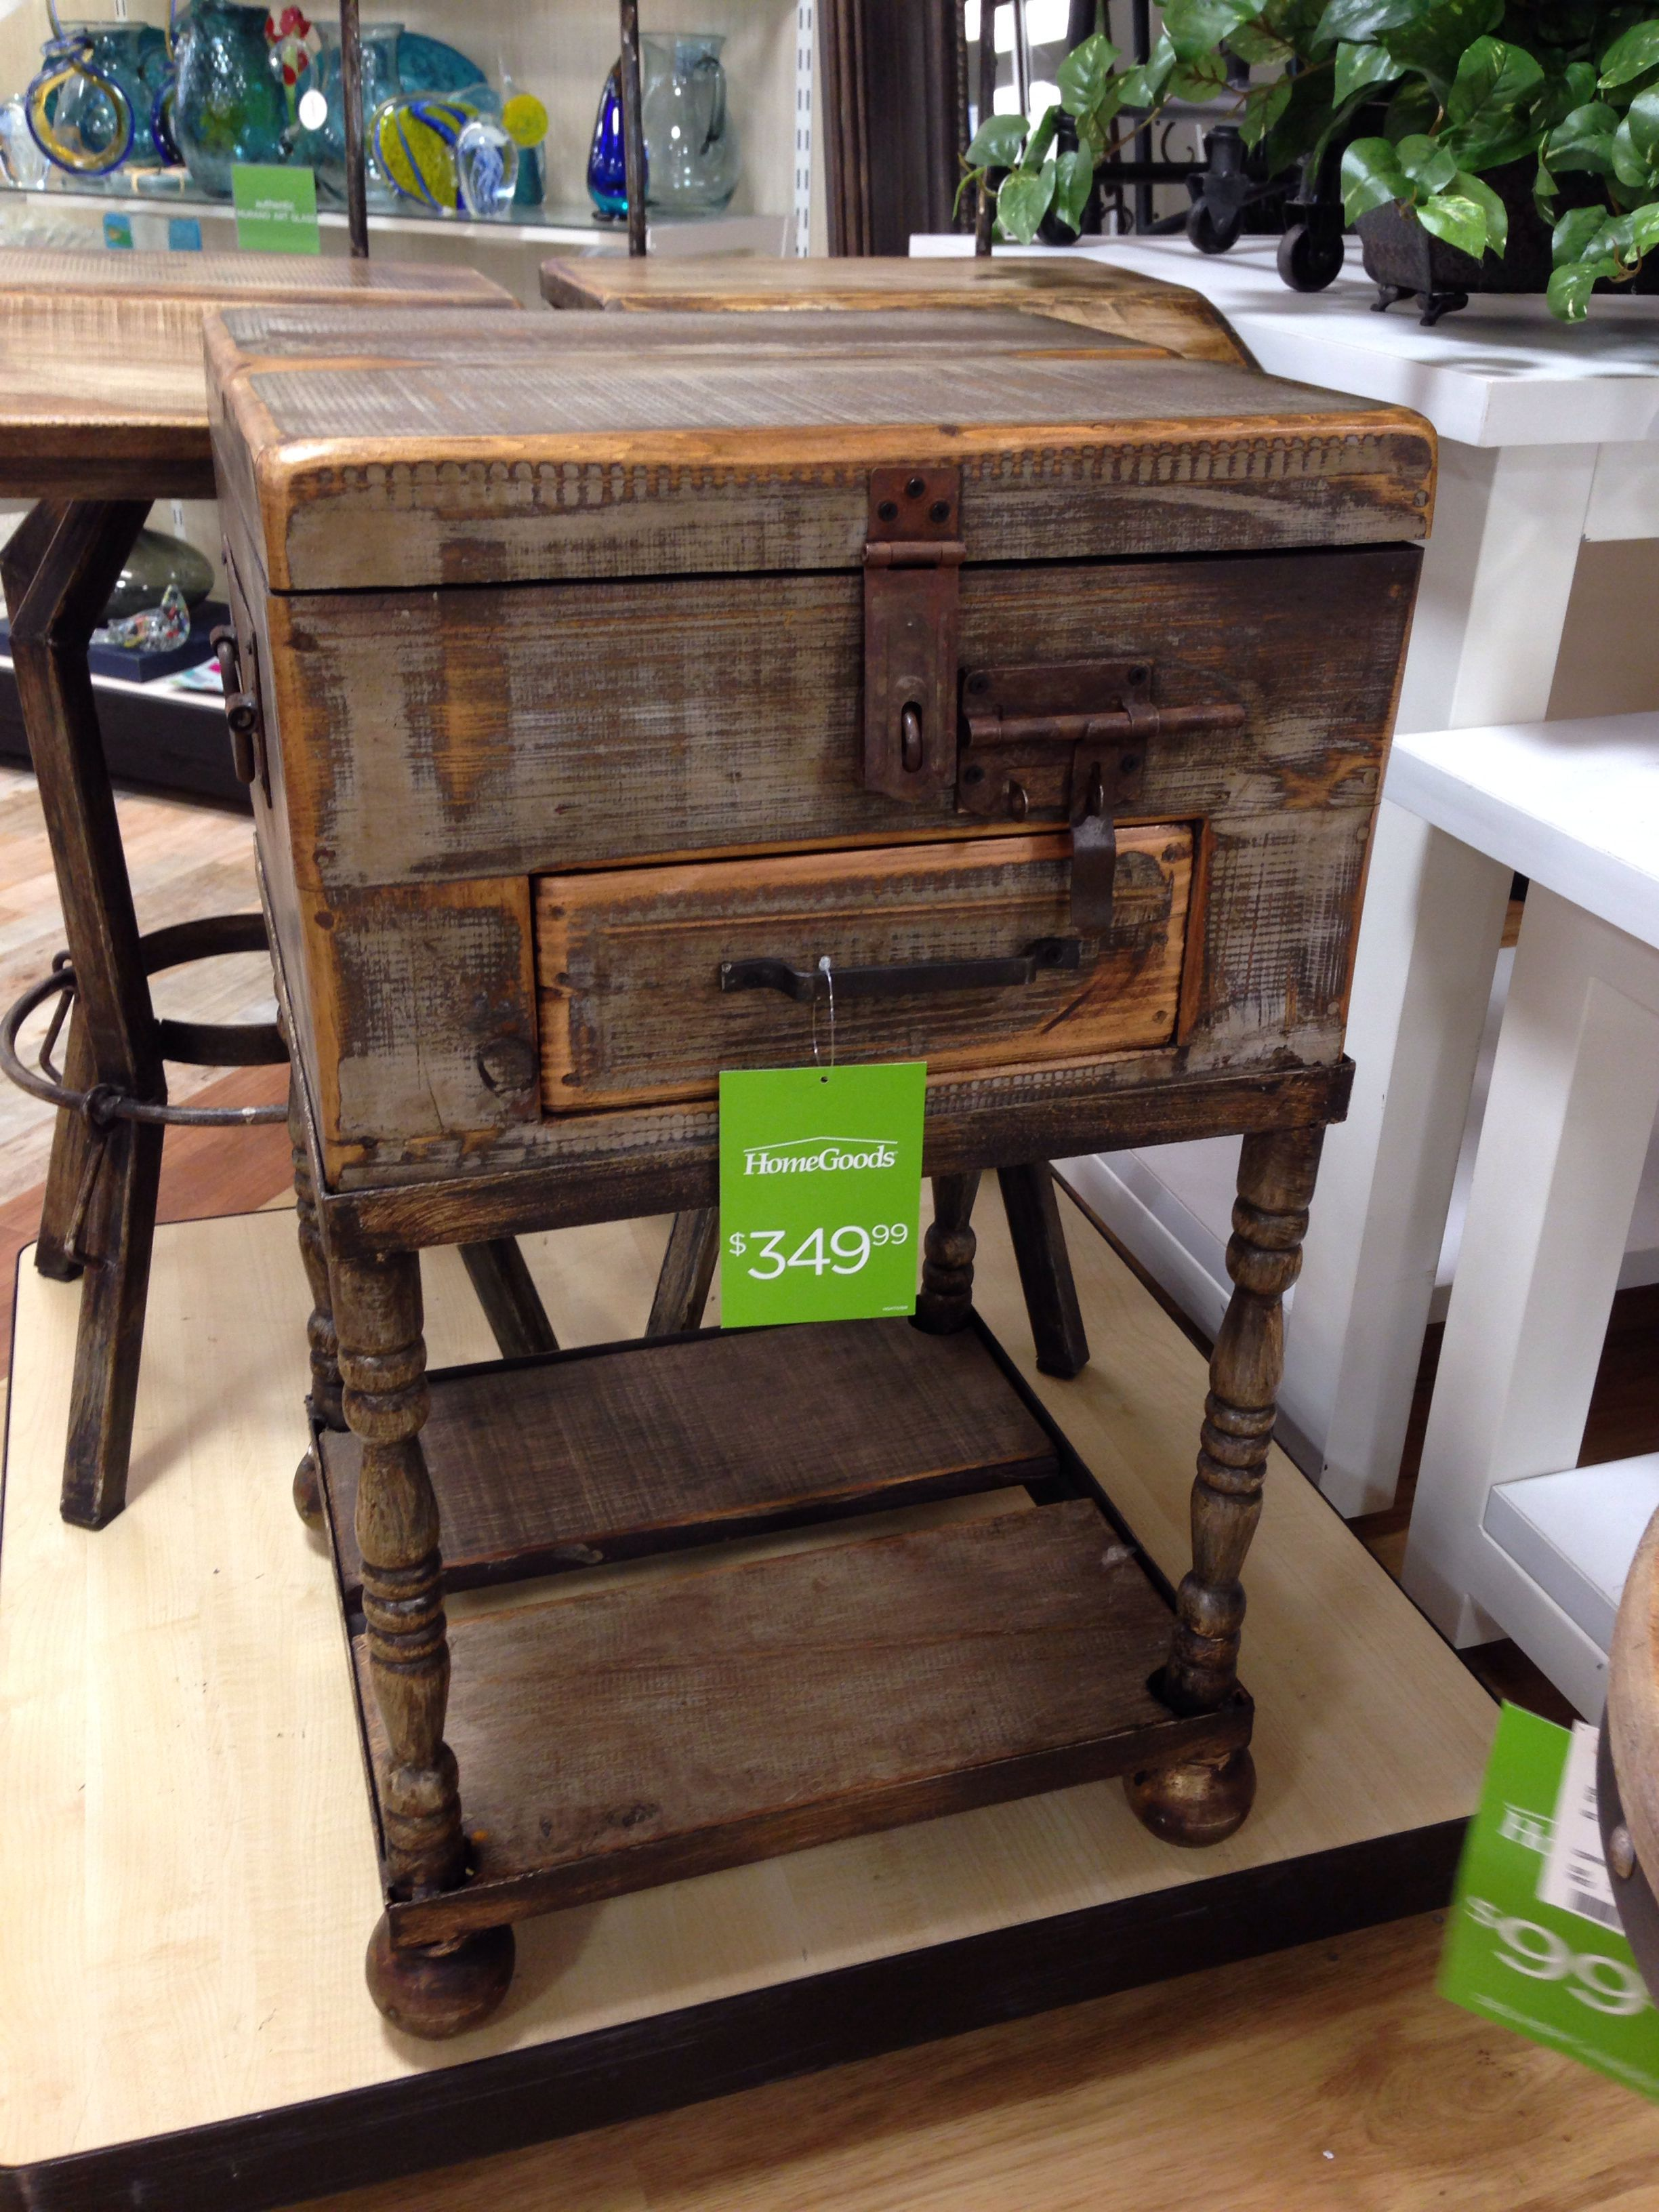 Rustic End Table Rustic End Tables Home Goods Store